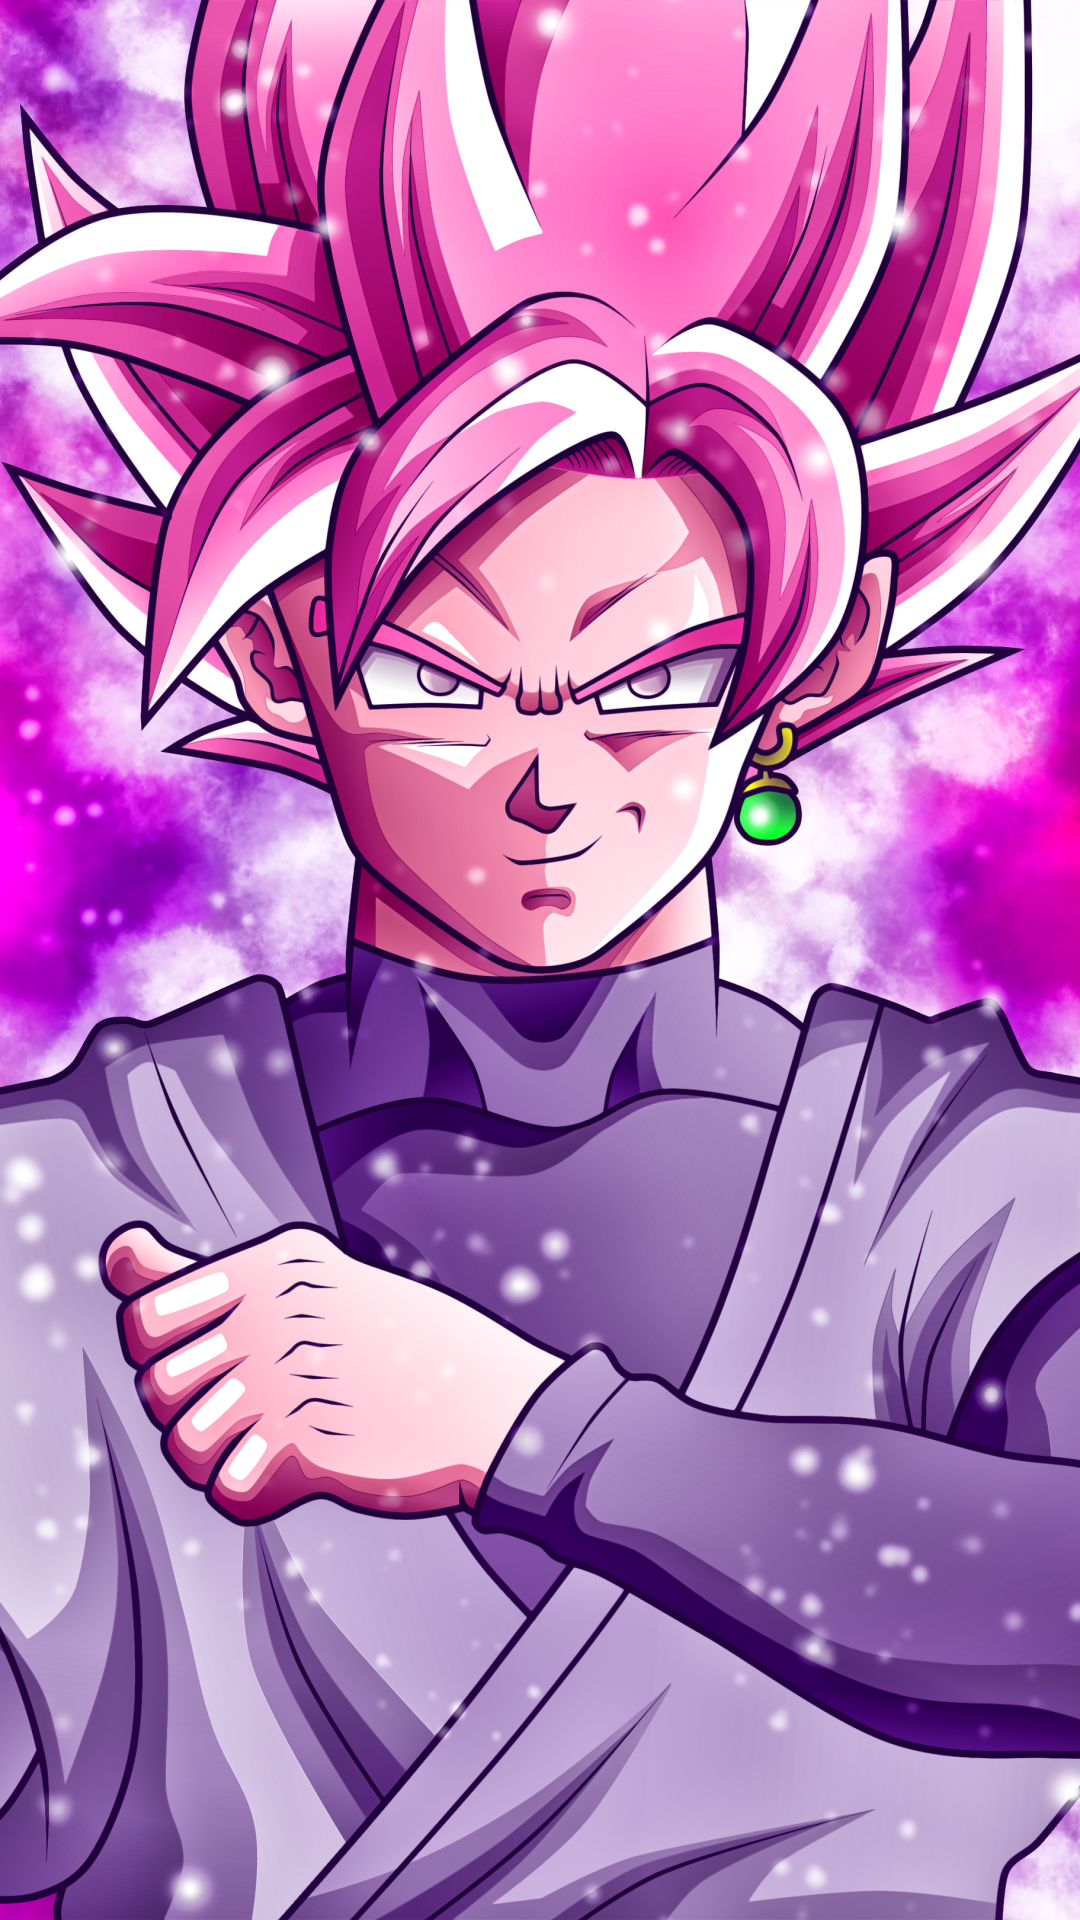 Anime Dragon Ball Super 1080x1920 Wallpaper Id 677532 Mobile Abyss